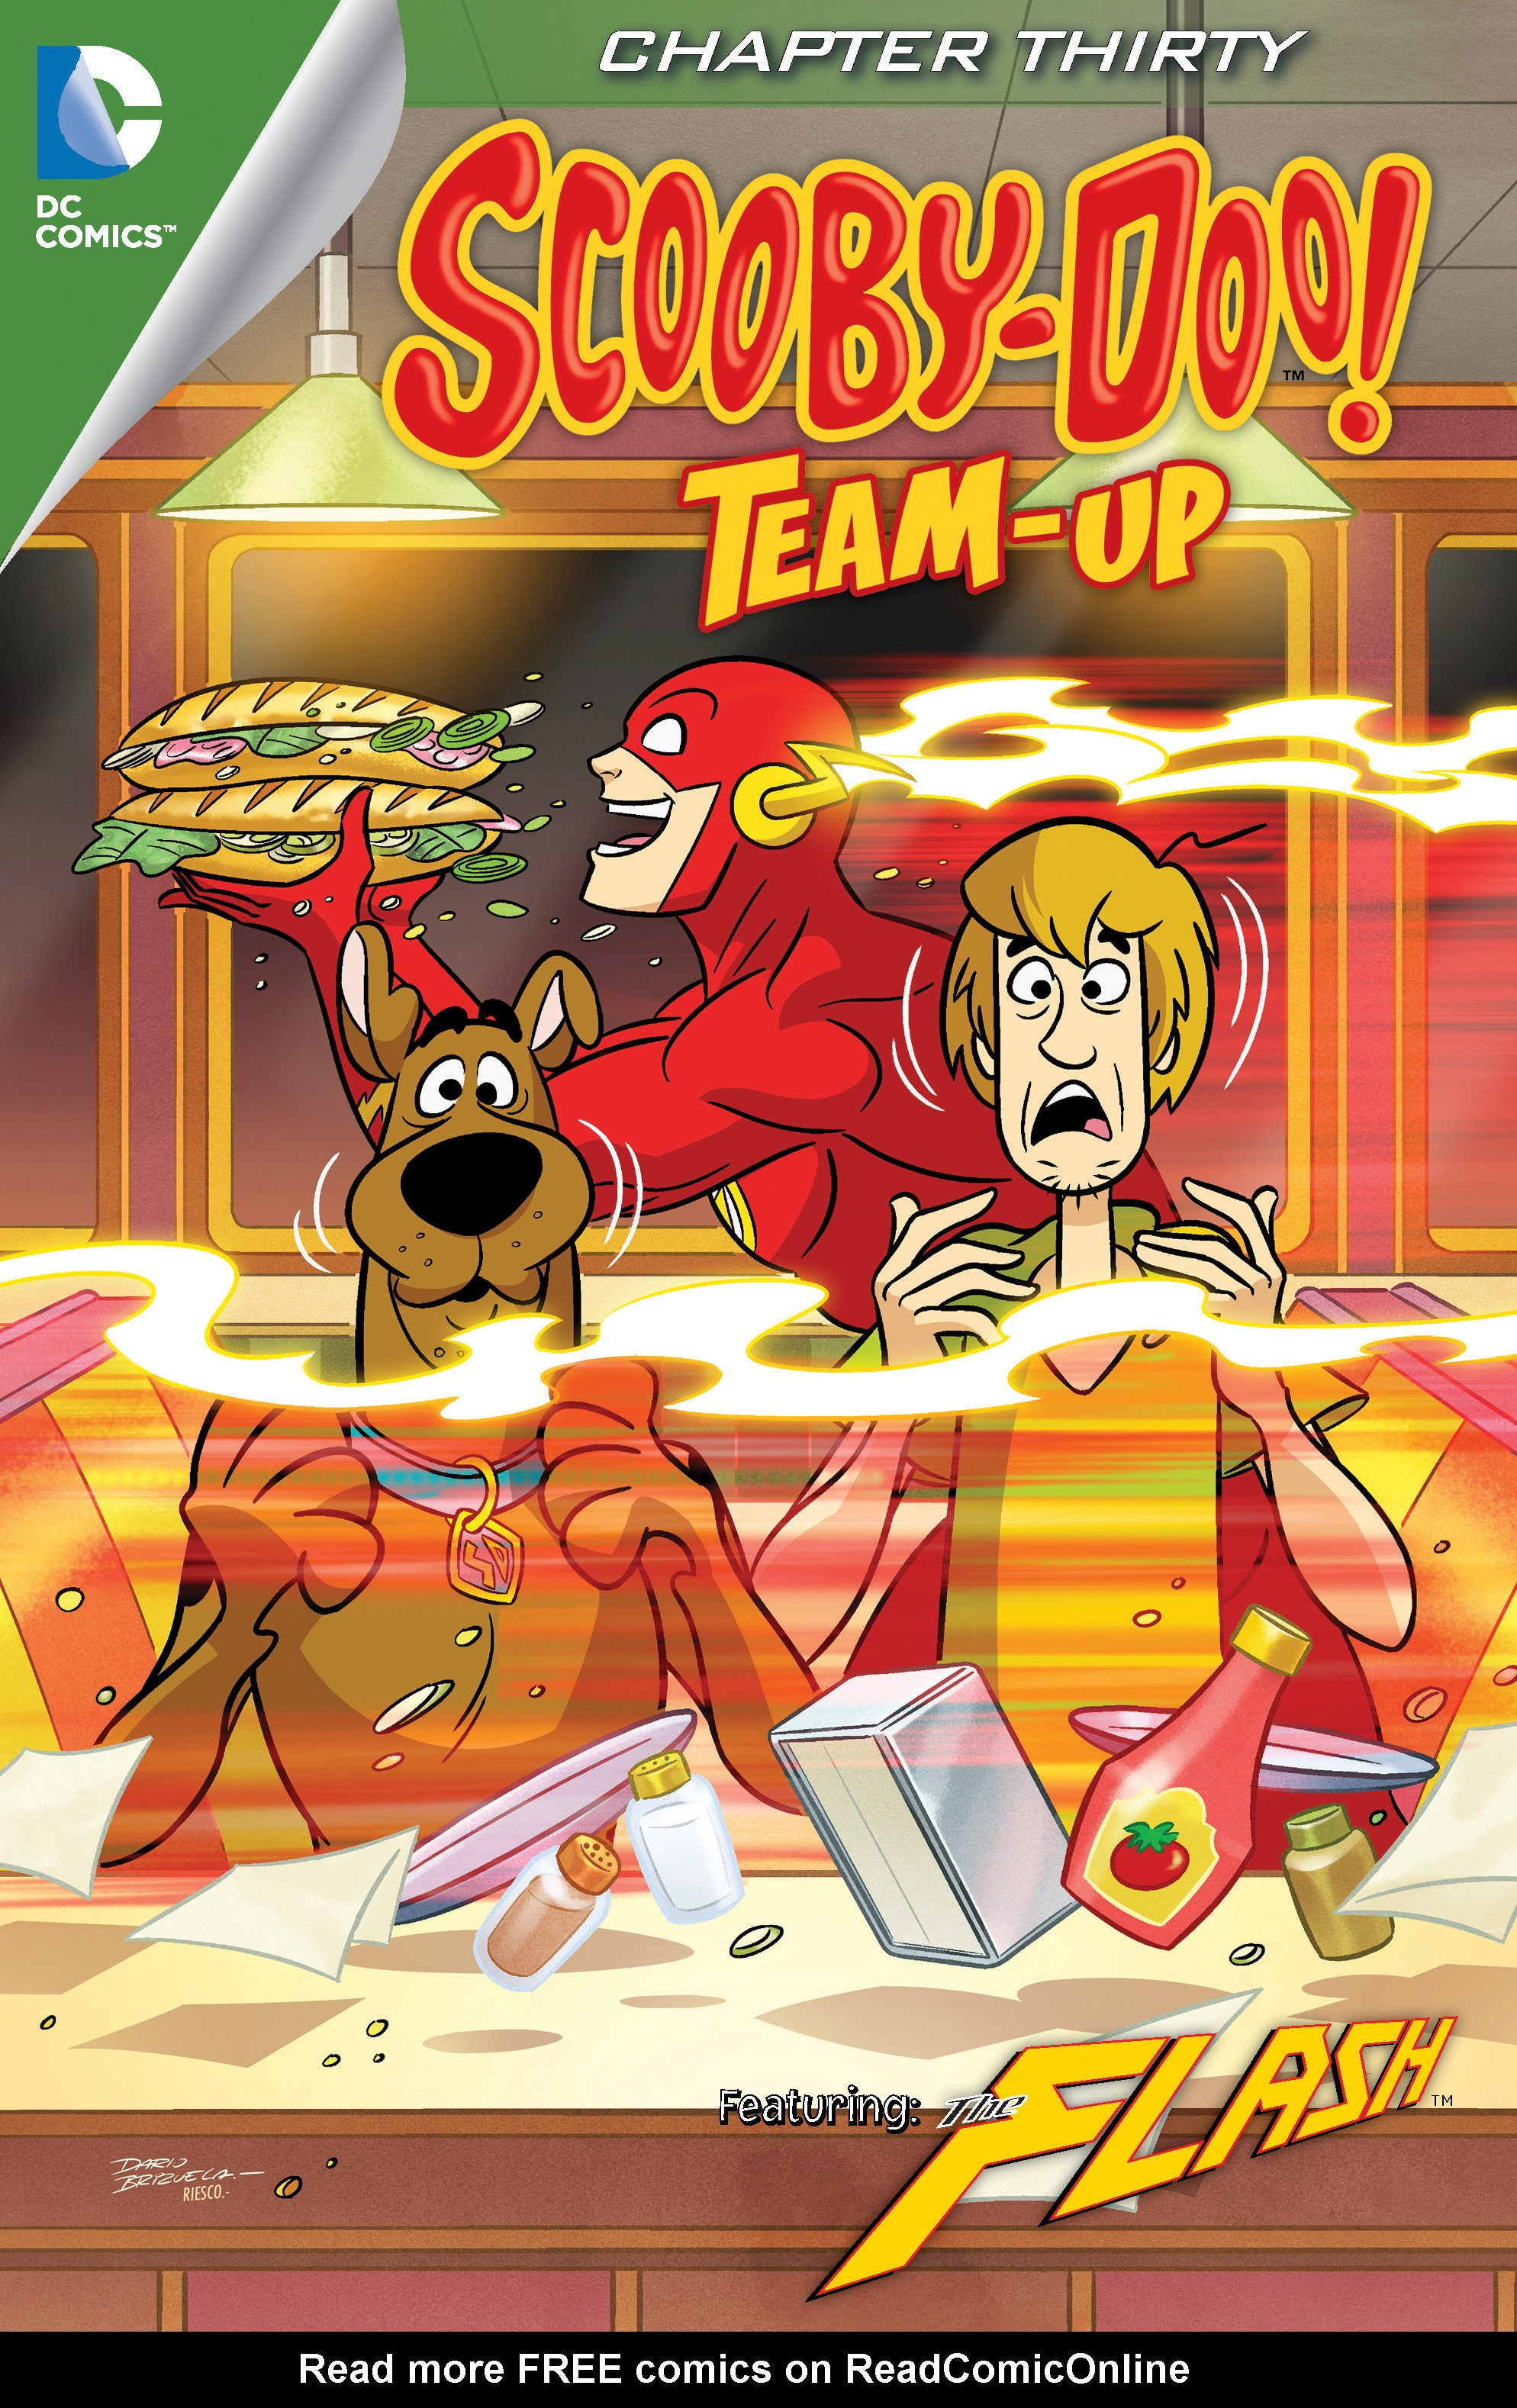 Read online Scooby-Doo! Team-Up comic -  Issue #30 - 2